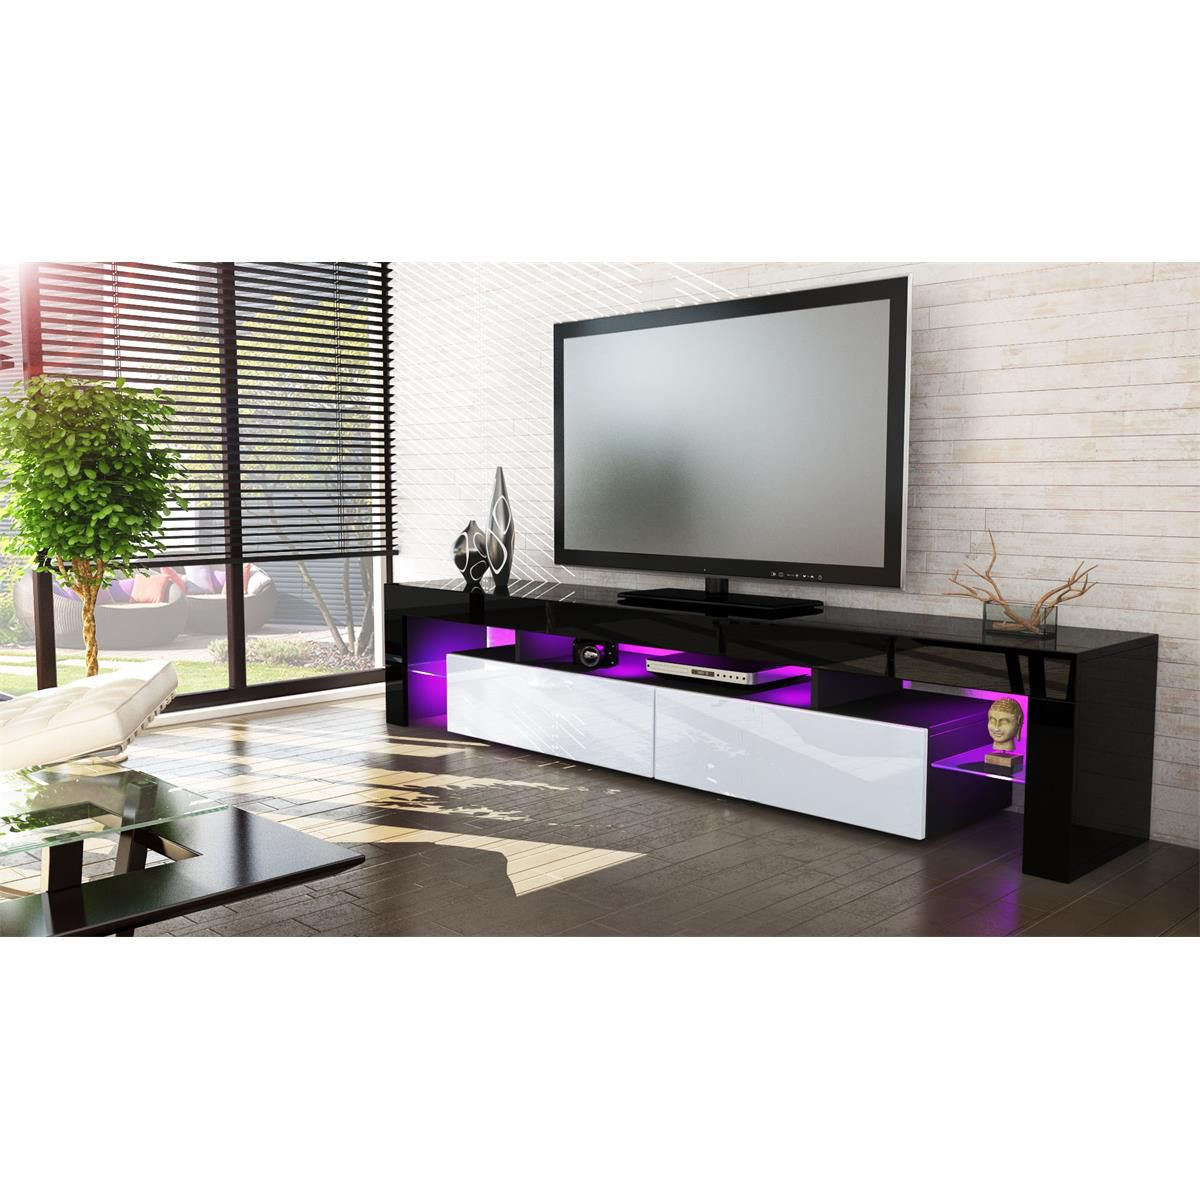 Black tv cabinet. TV stand with 2 closed storage space and two